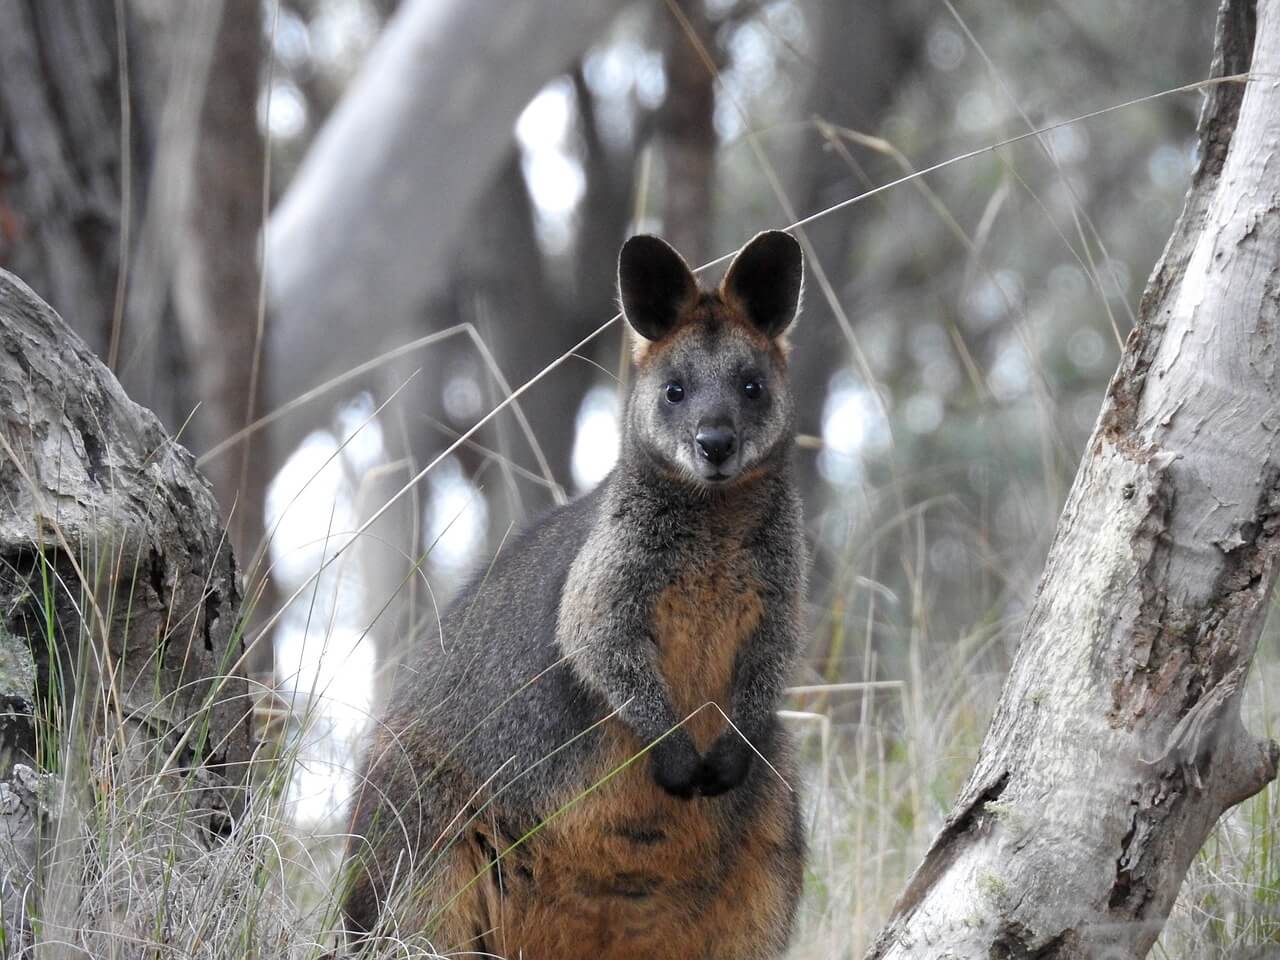 //pixabay.com/photos/swamp-wallaby-kangaroo-standing-1575016/